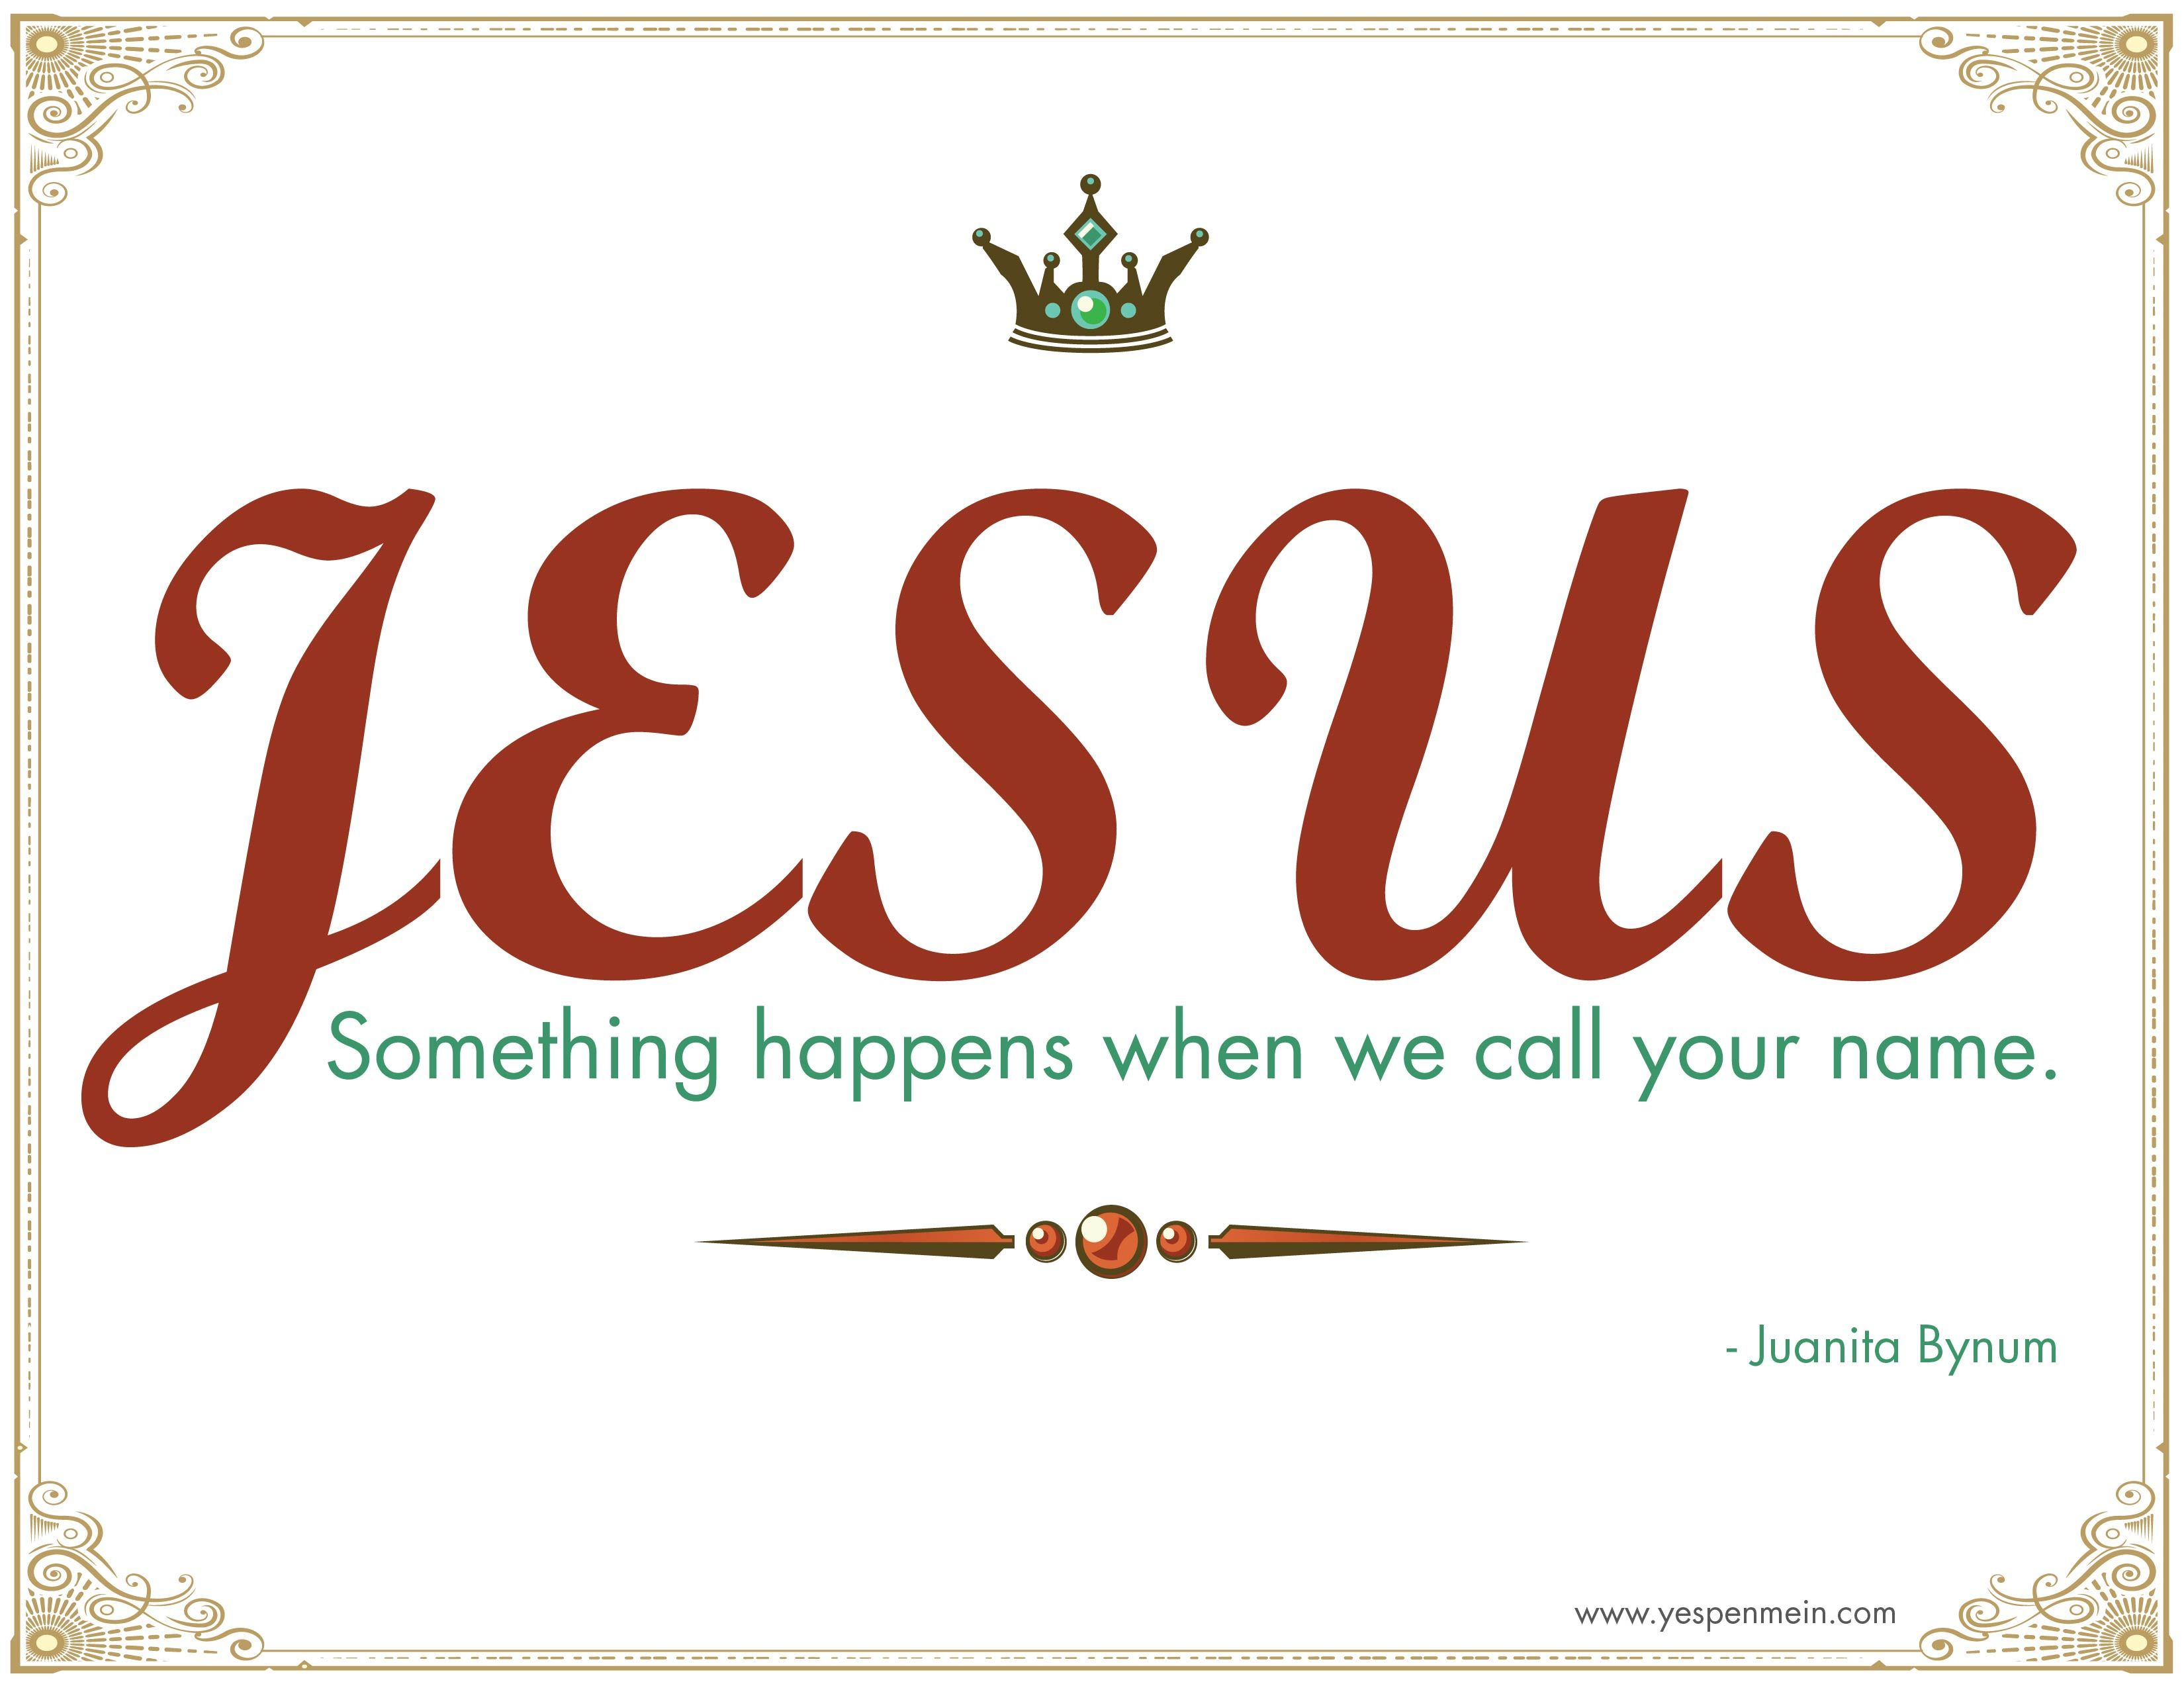 Jesus something happens when we call your name. Juanita Bynum quote